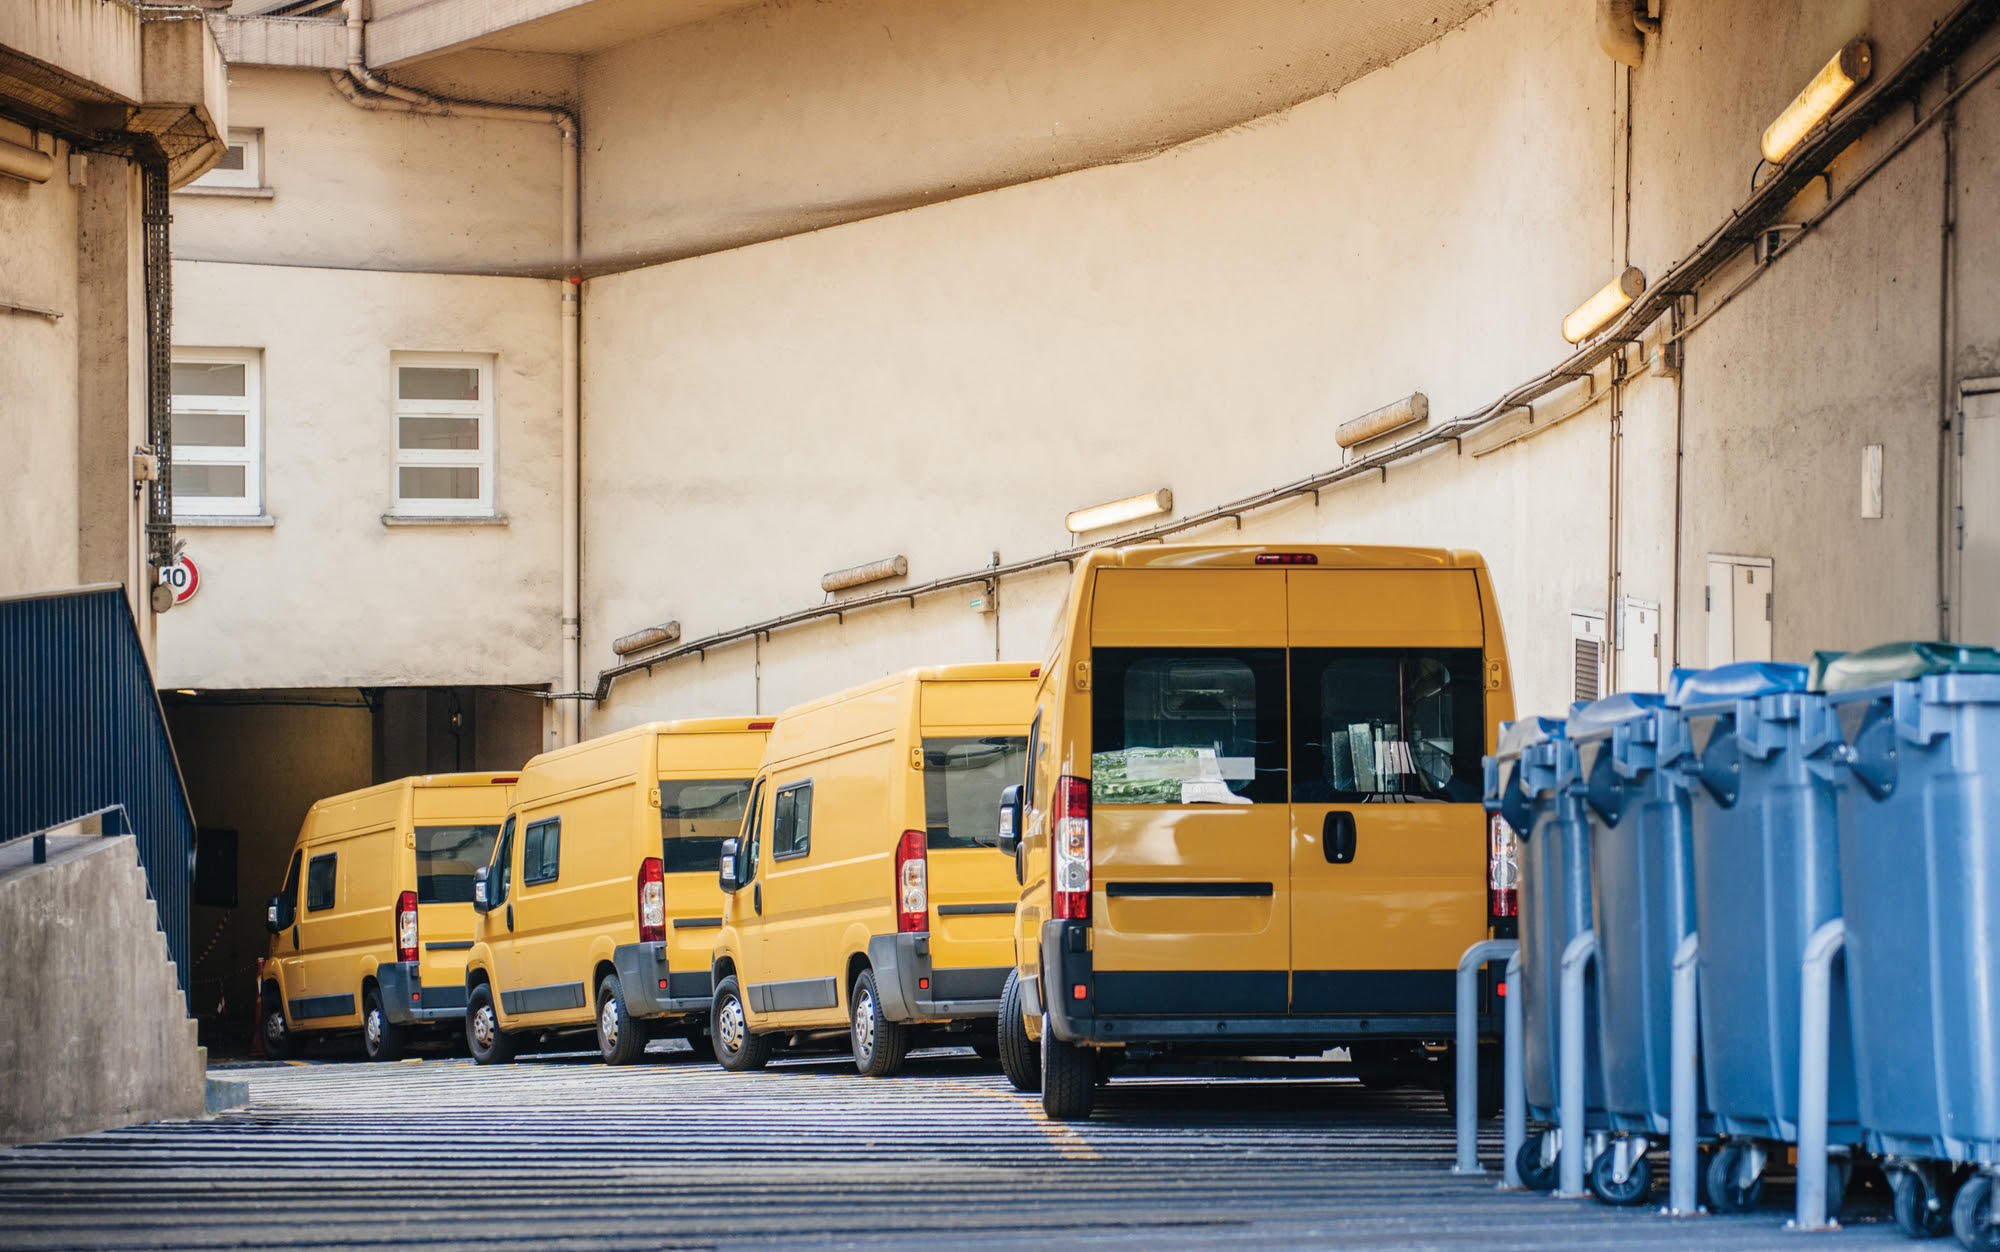 Compare Michigan Commercial Vehicle Insurance Quotes - Save up to 40%